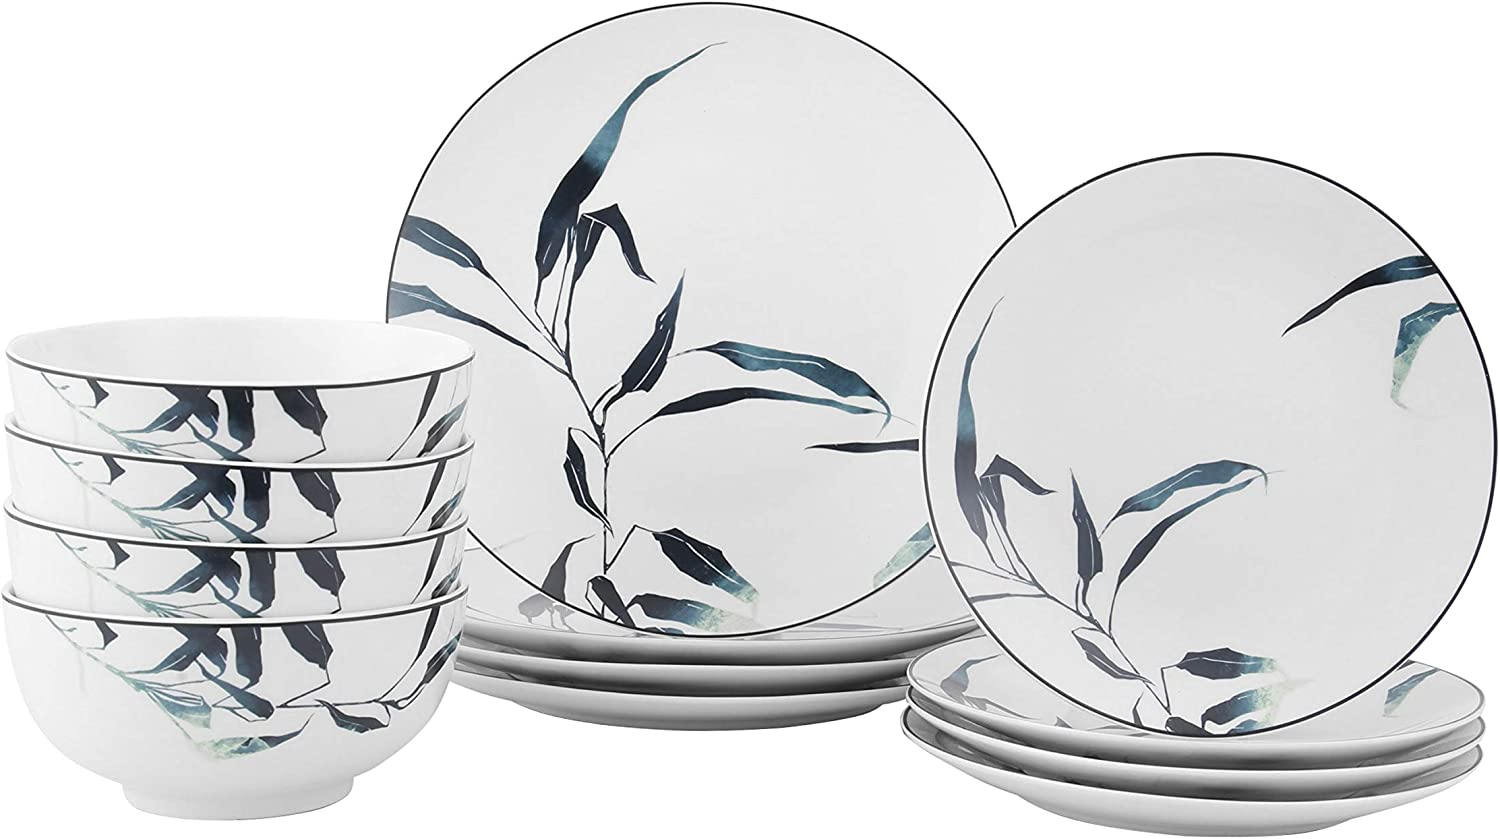 FIGULARK 12-Piece Dinnerware Set for 4 with Beautiful Leaves, Chip Resistant Kitchen Dishes Sets, Large Plates & Bowls for Dinner, Salad, Dessert …